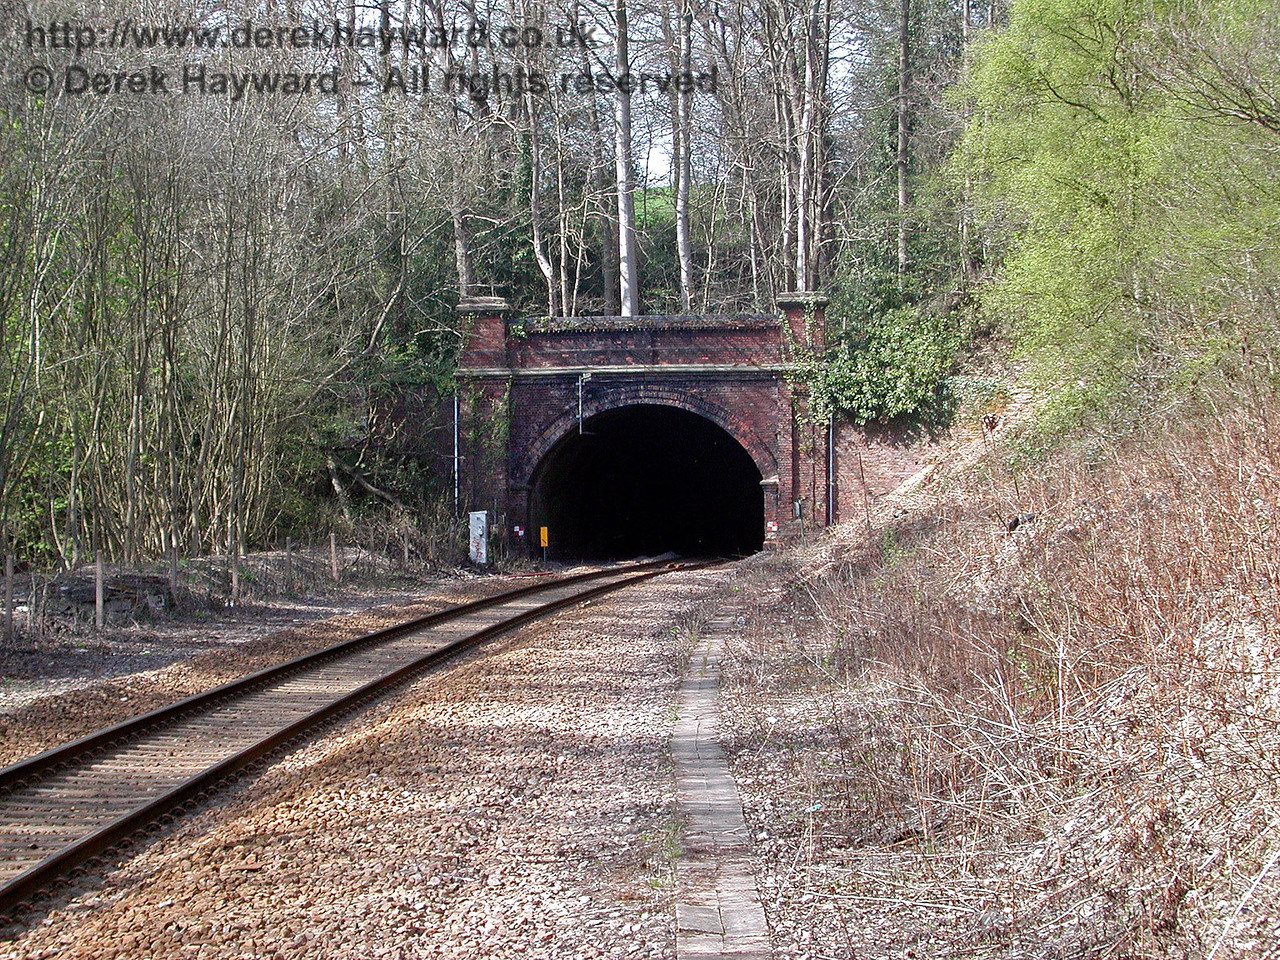 Taken with a long lens from Cowden station this view shows the southern portal of Markbeech tunnel more clearly.  At the time some large trees were growing above the arch of the tunnel, with the consequent risk of damage, but these have since been felled. 18.04.2003